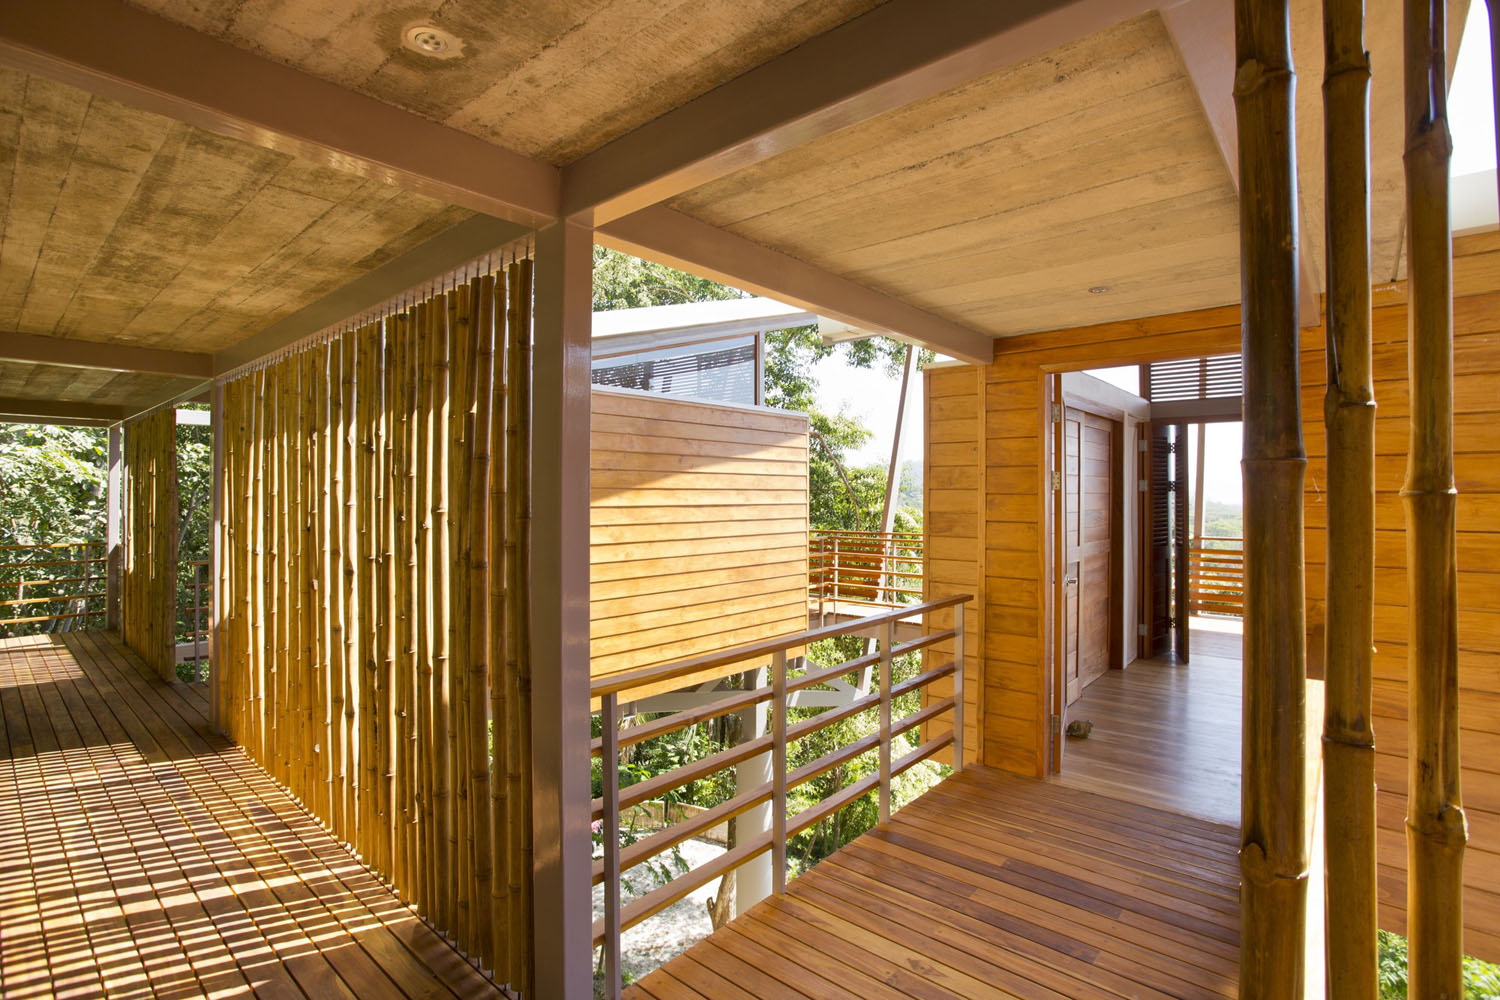 House built with Wood and Bamboo materials